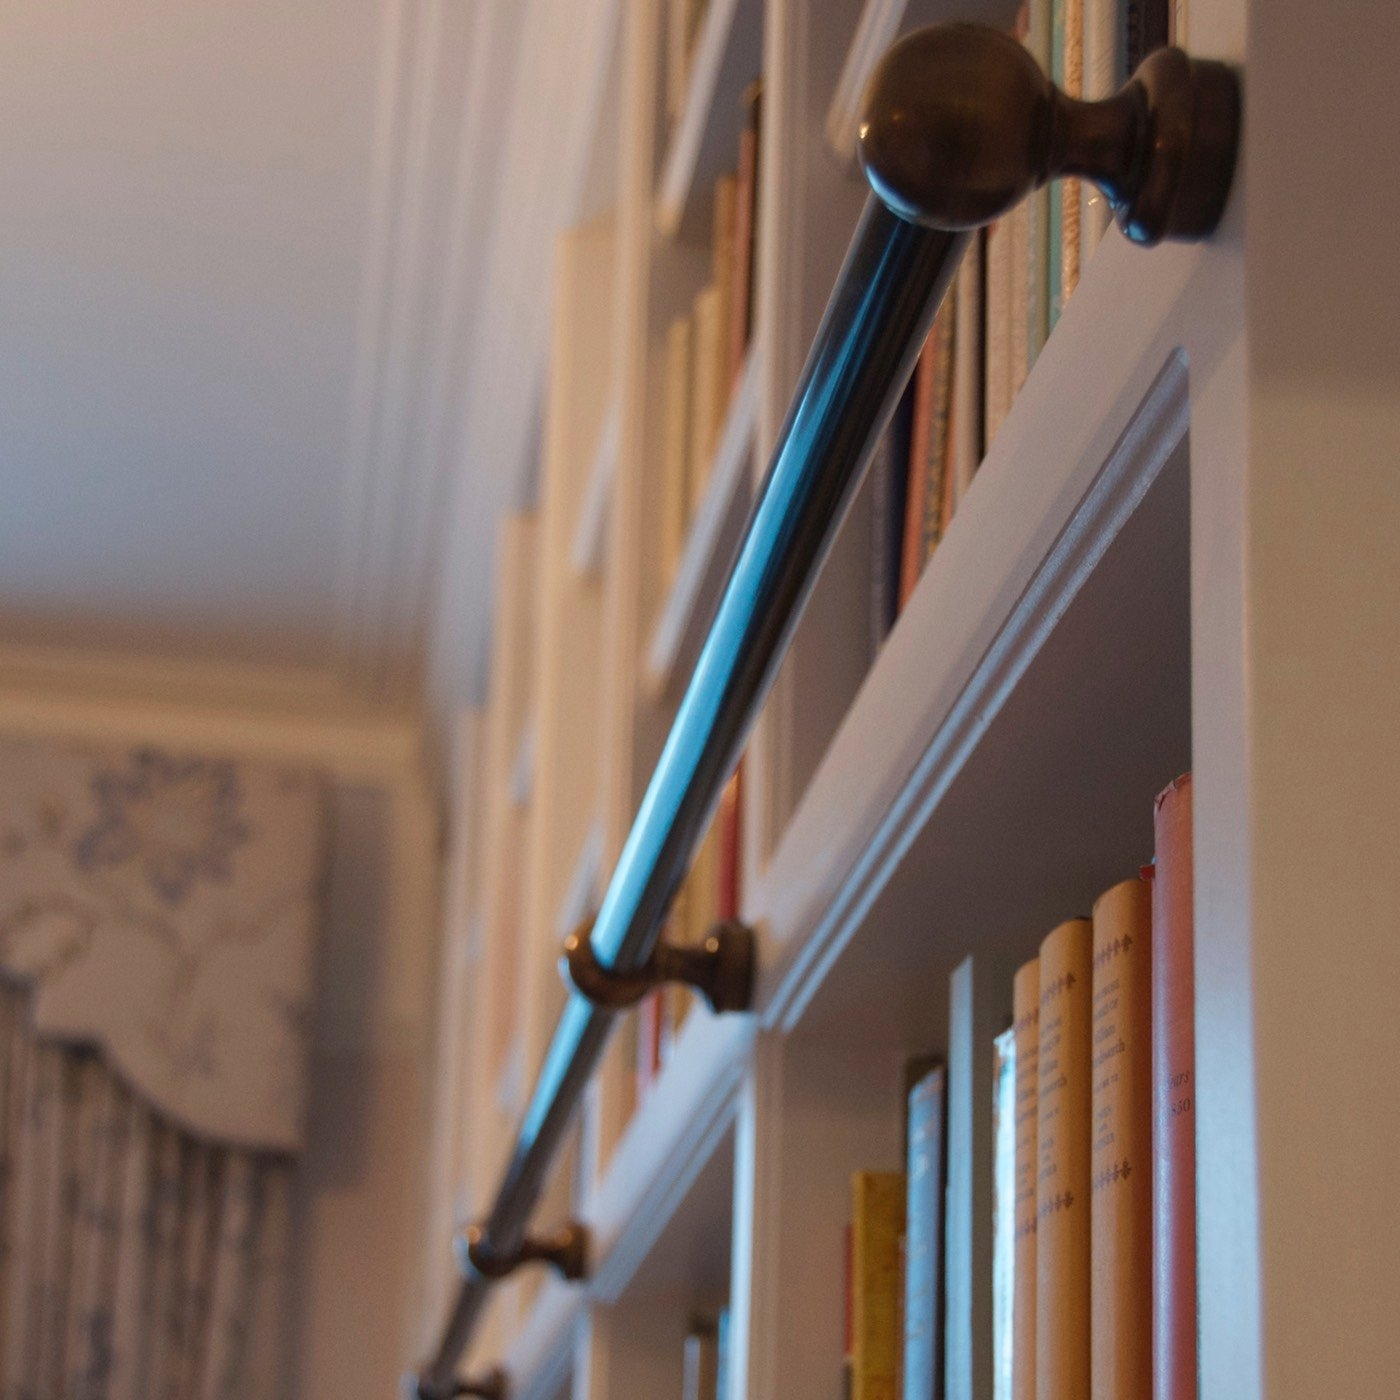 Amazing Wooden Library Ladders Uk 2 Bespoke Bronze Hook On Inside Wooden Library Ladders (View 14 of 15)